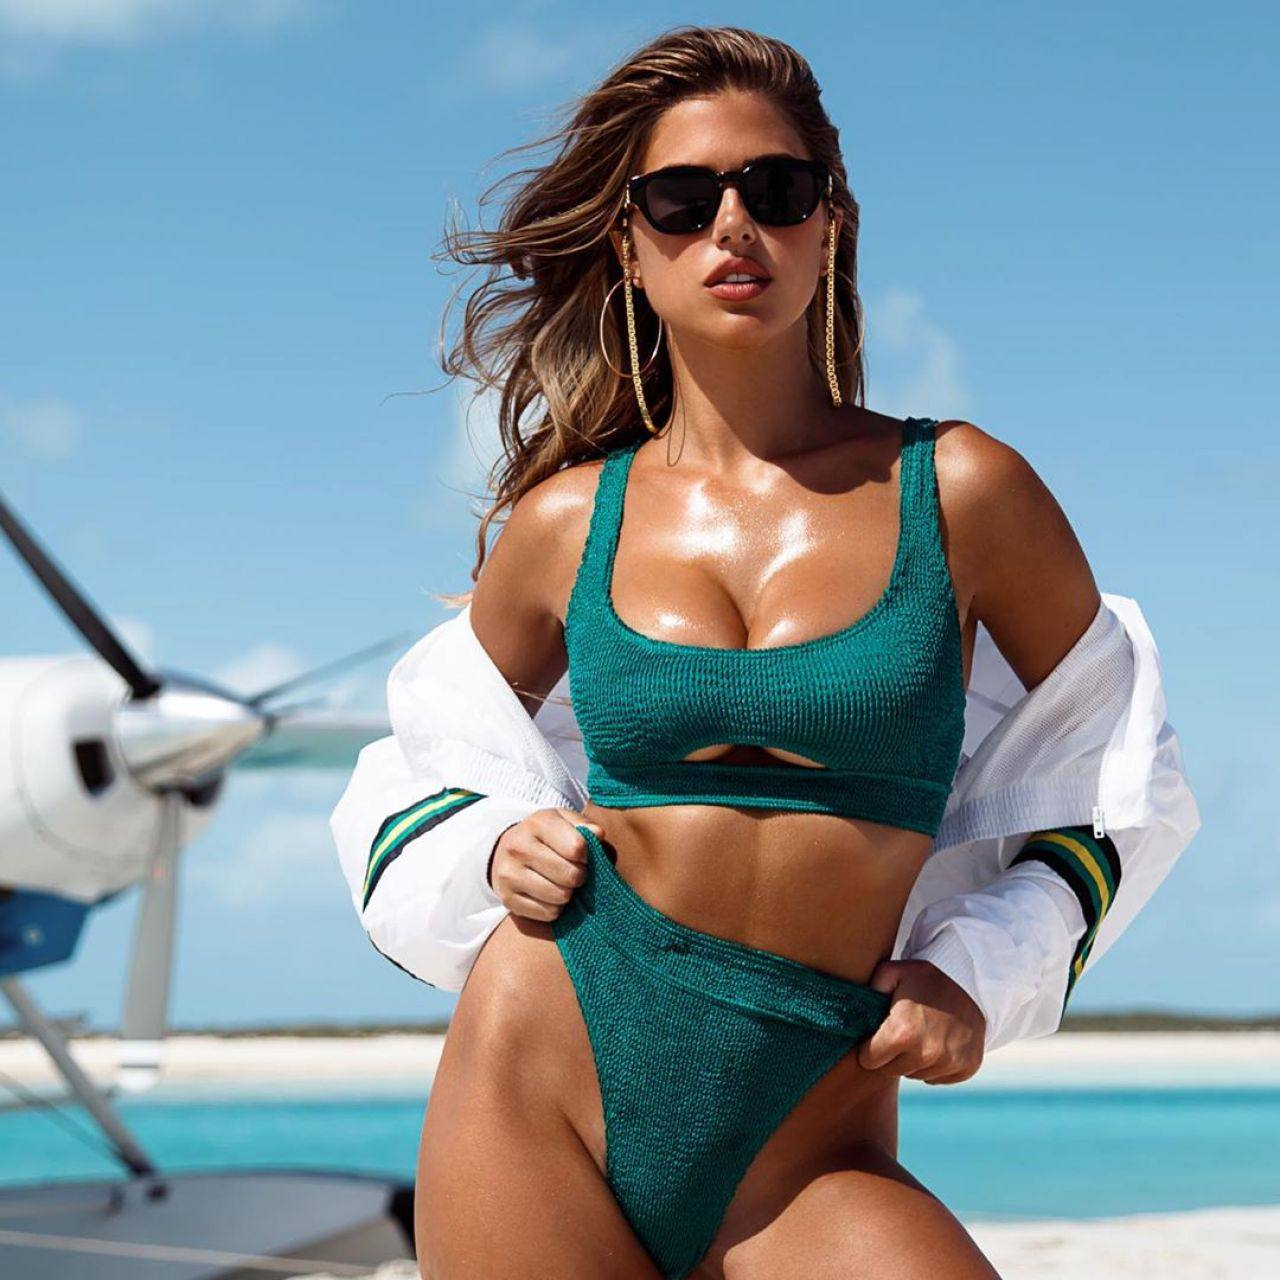 Kara Del Toro Beautiful Boobs At Beach